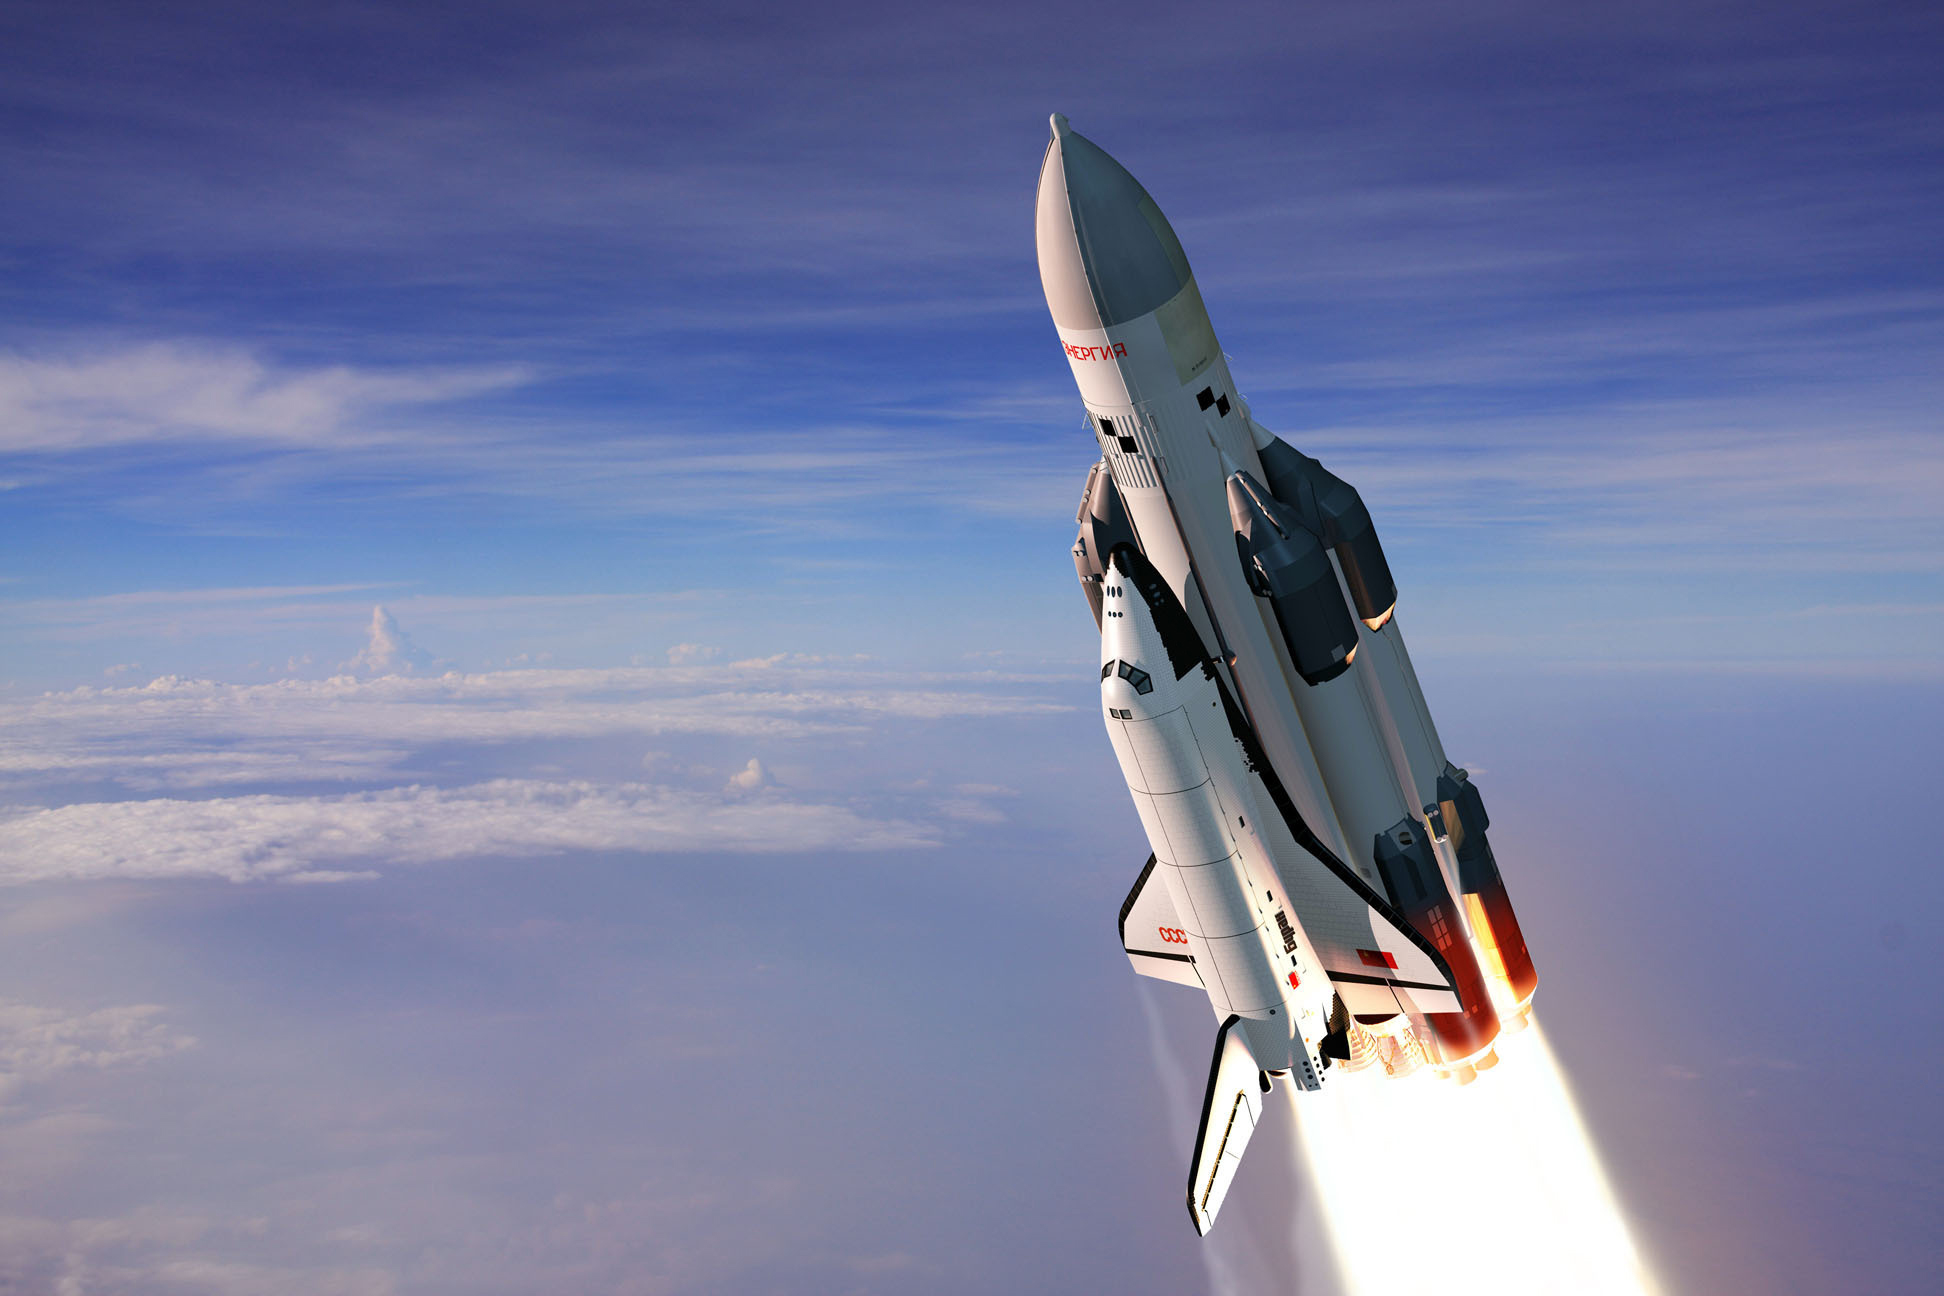 space shuttle space background - photo #34